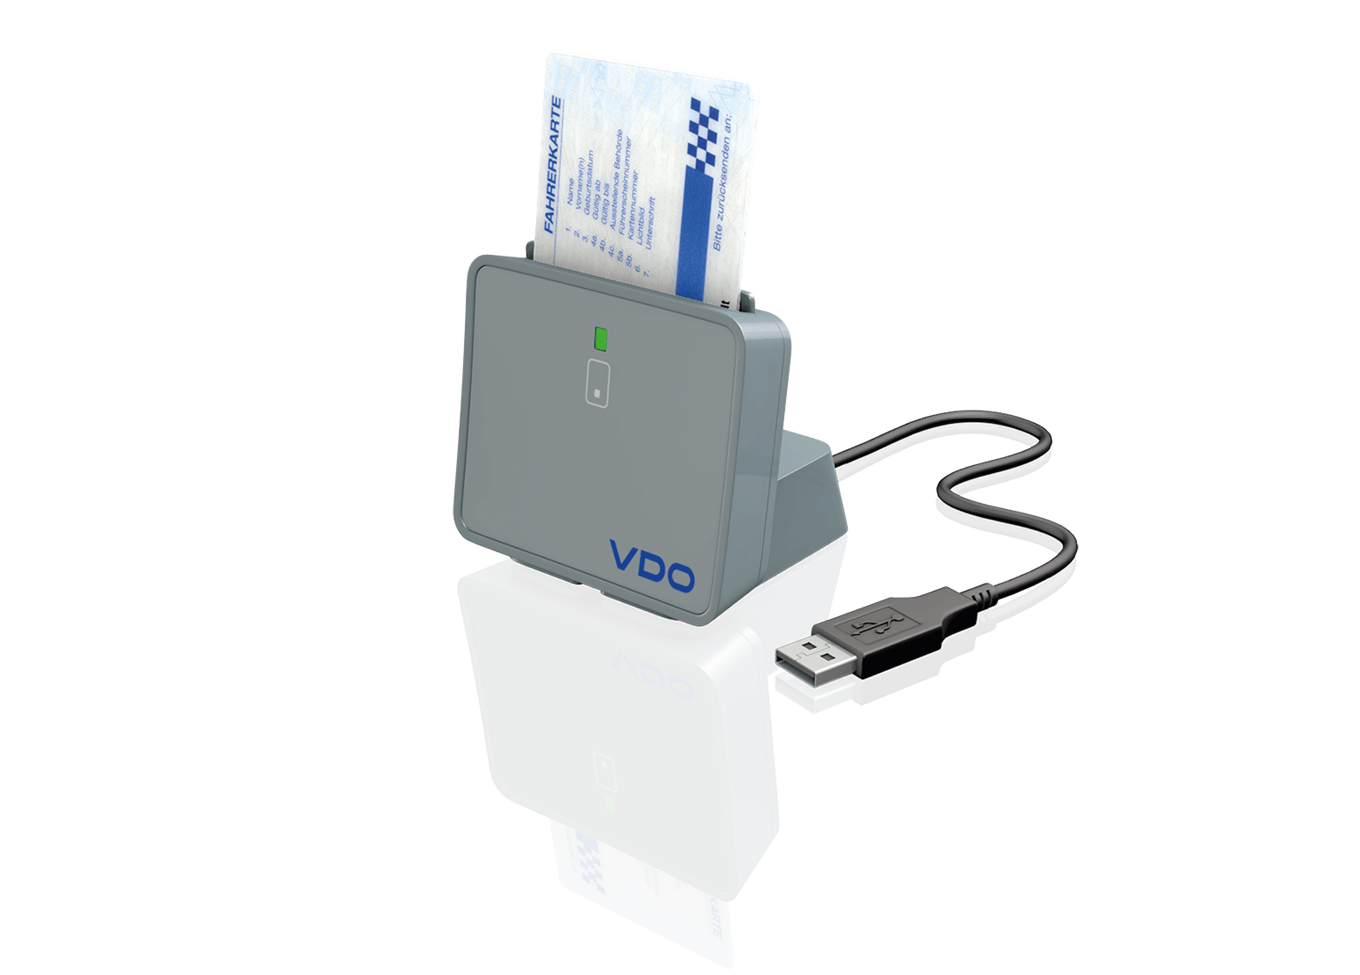 The Compact Reader for Tachograph Cards